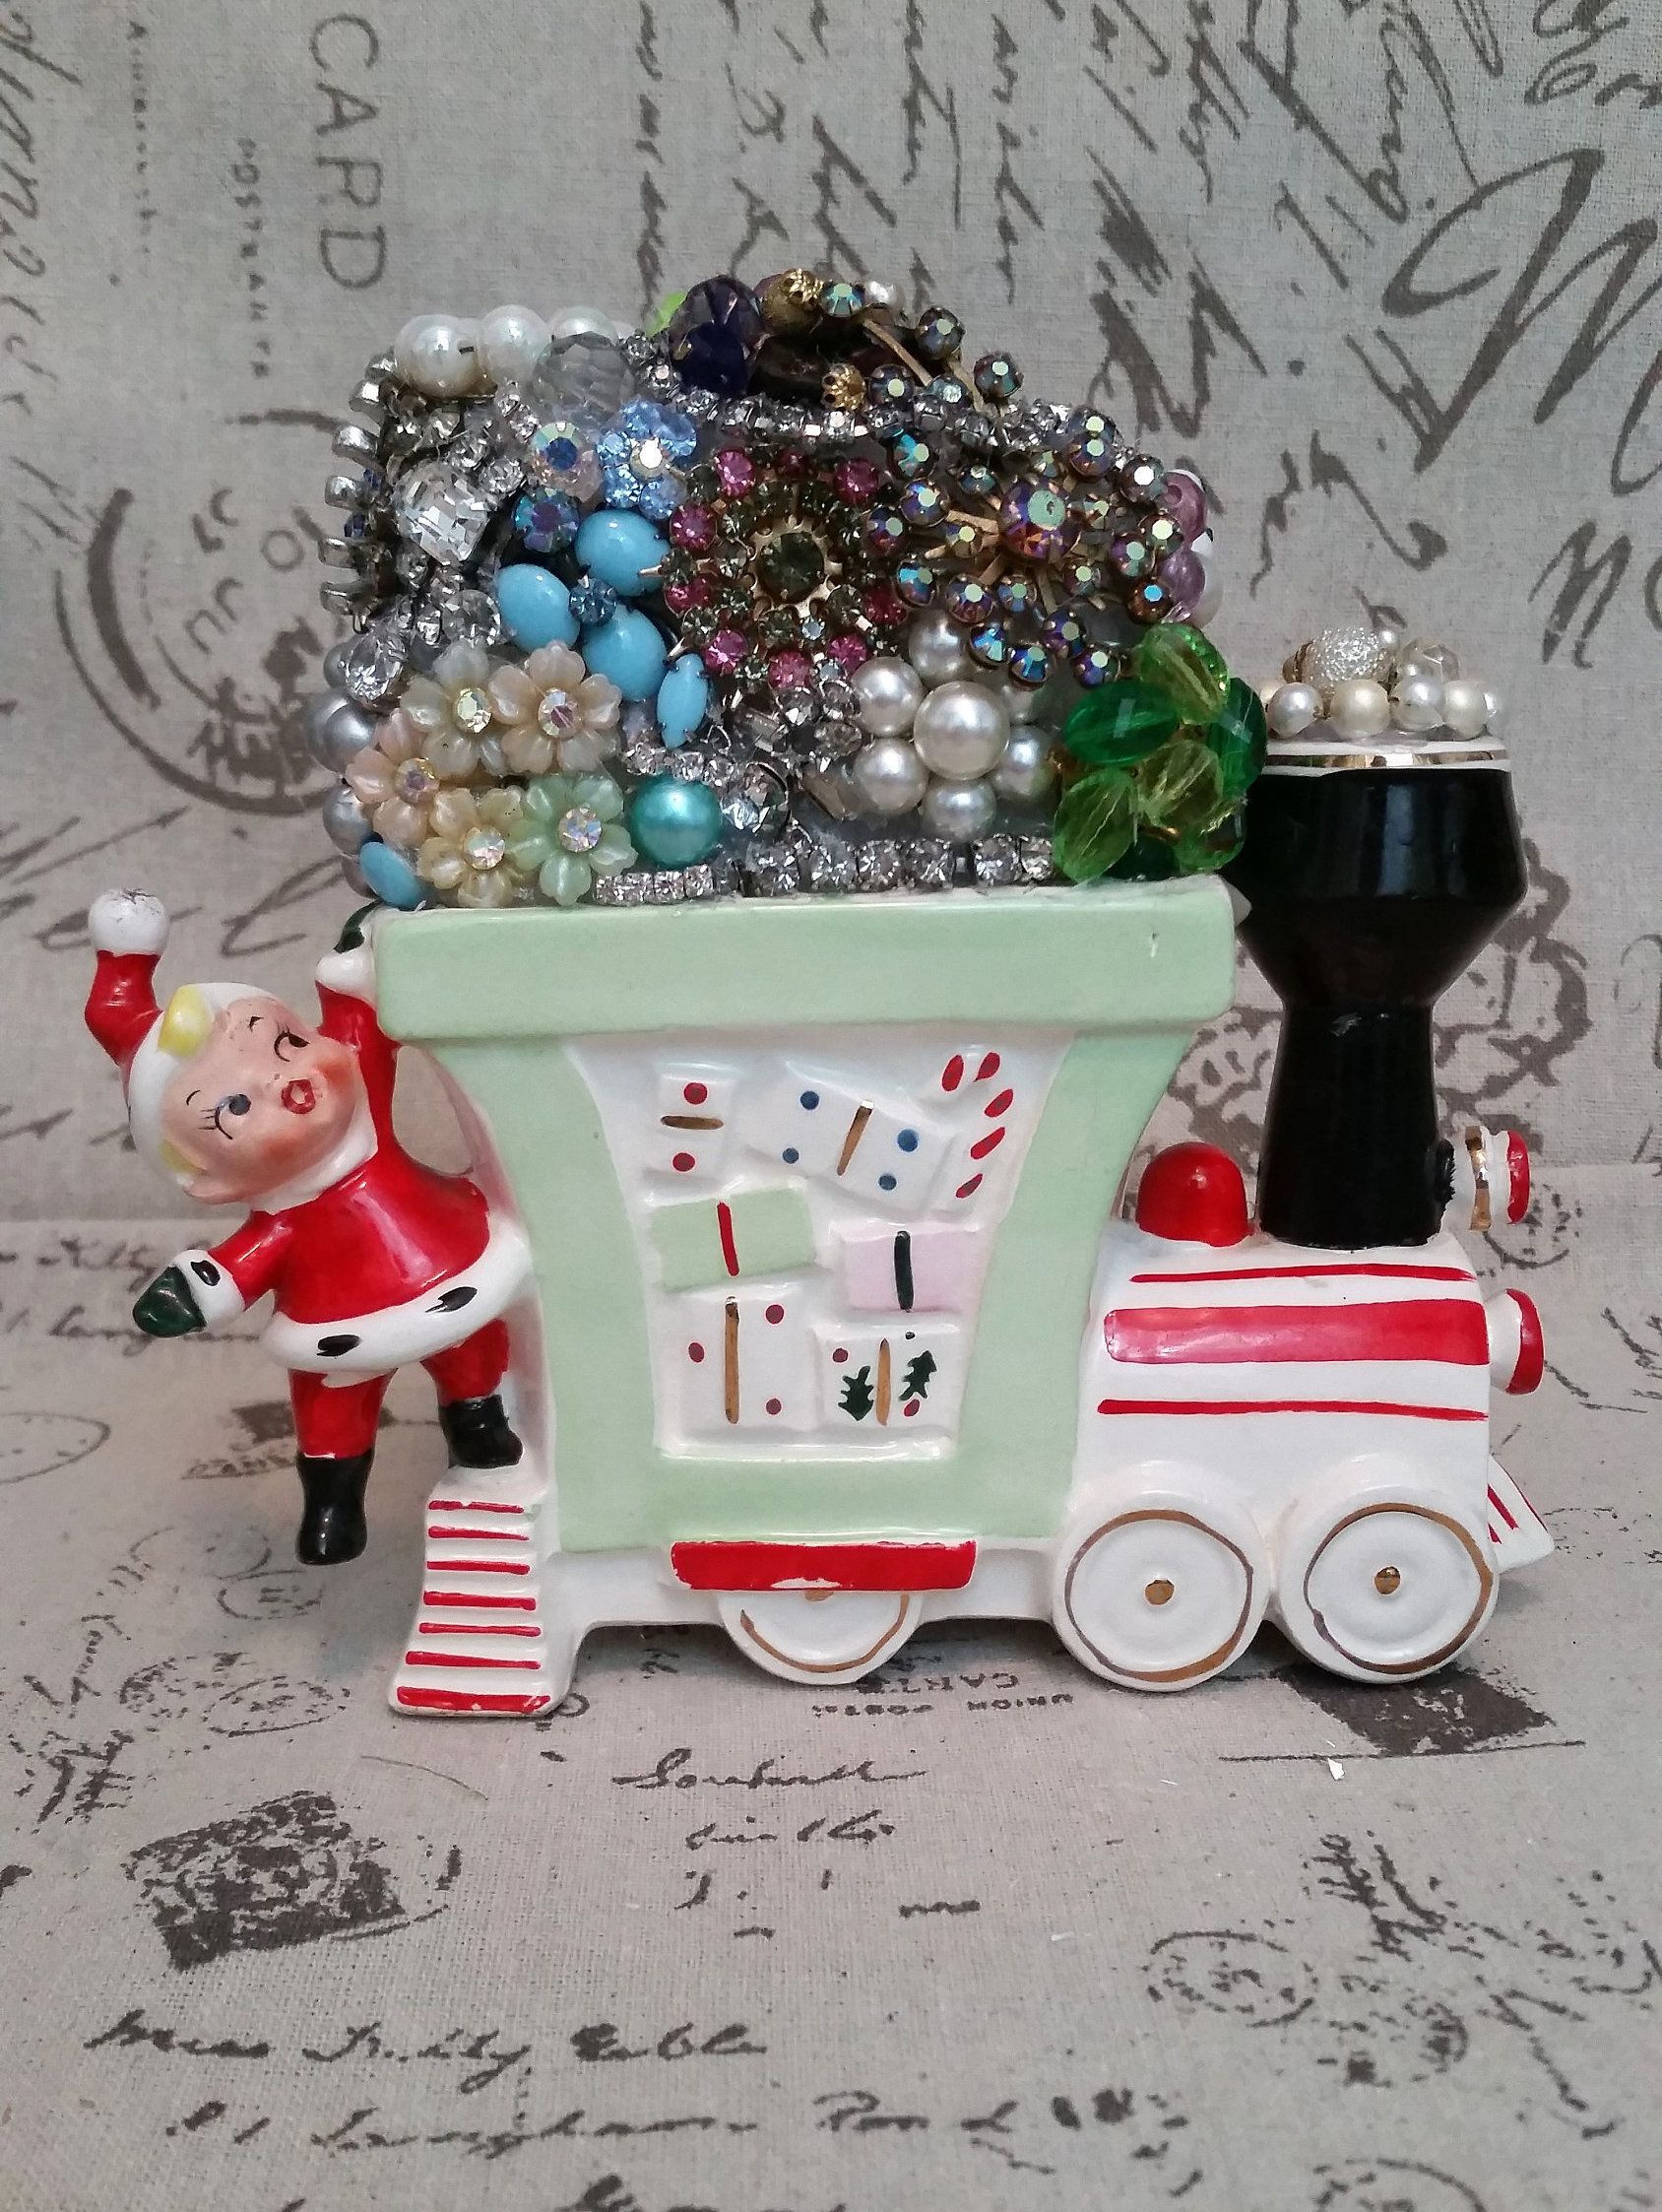 Vintage Girl Christmas Planter Train Loaded With Rhinestones, Jewlery And